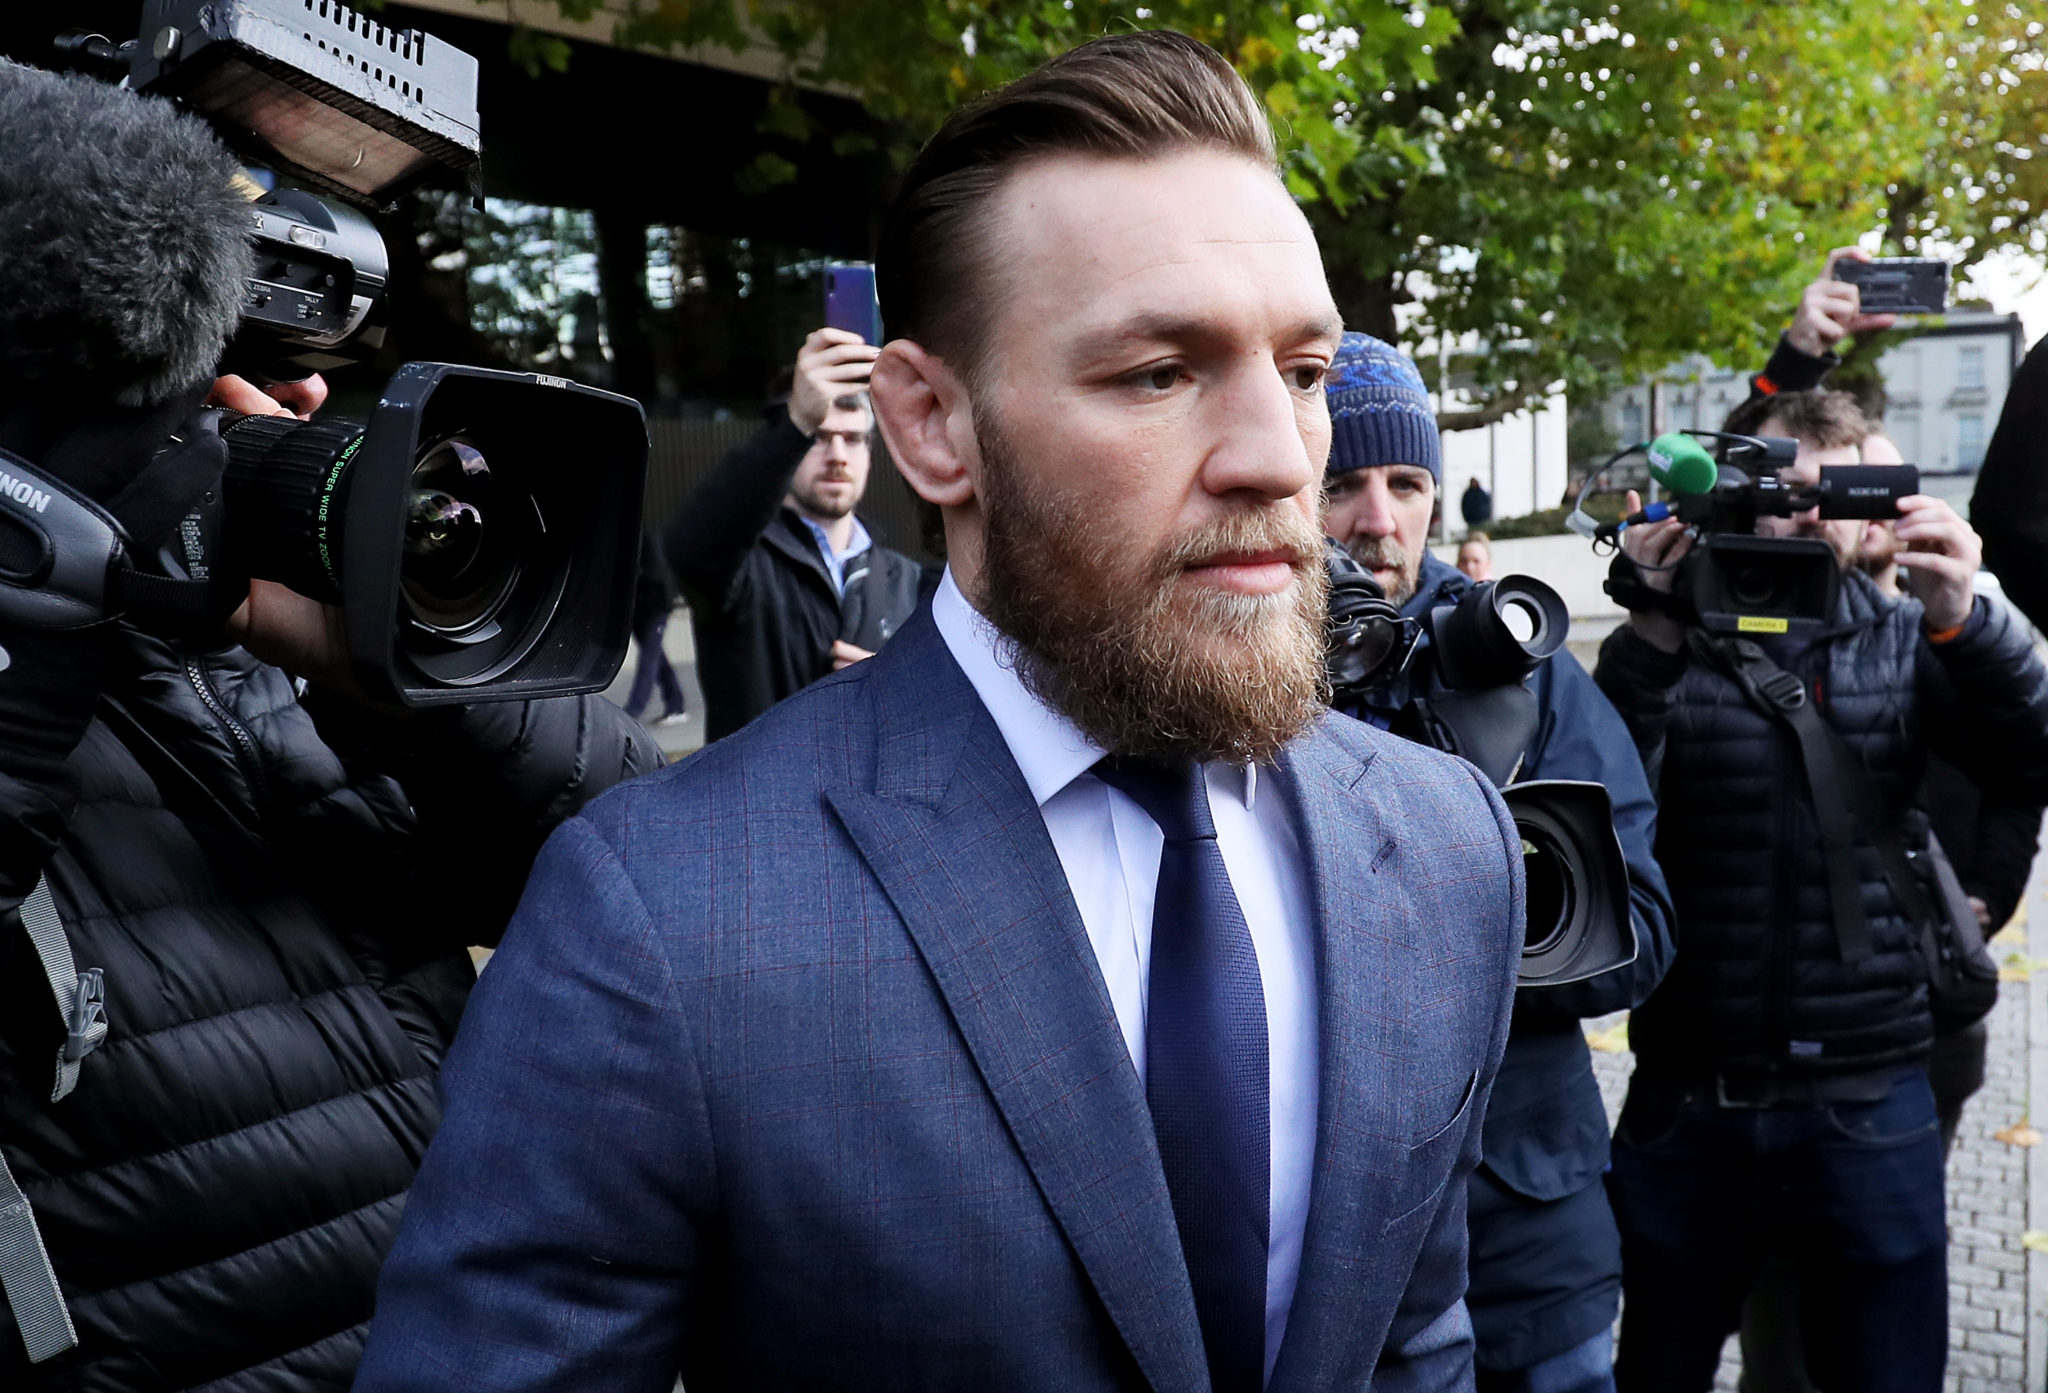 Conor McGregor pleas guilty, gets fined for Ireland pub punch